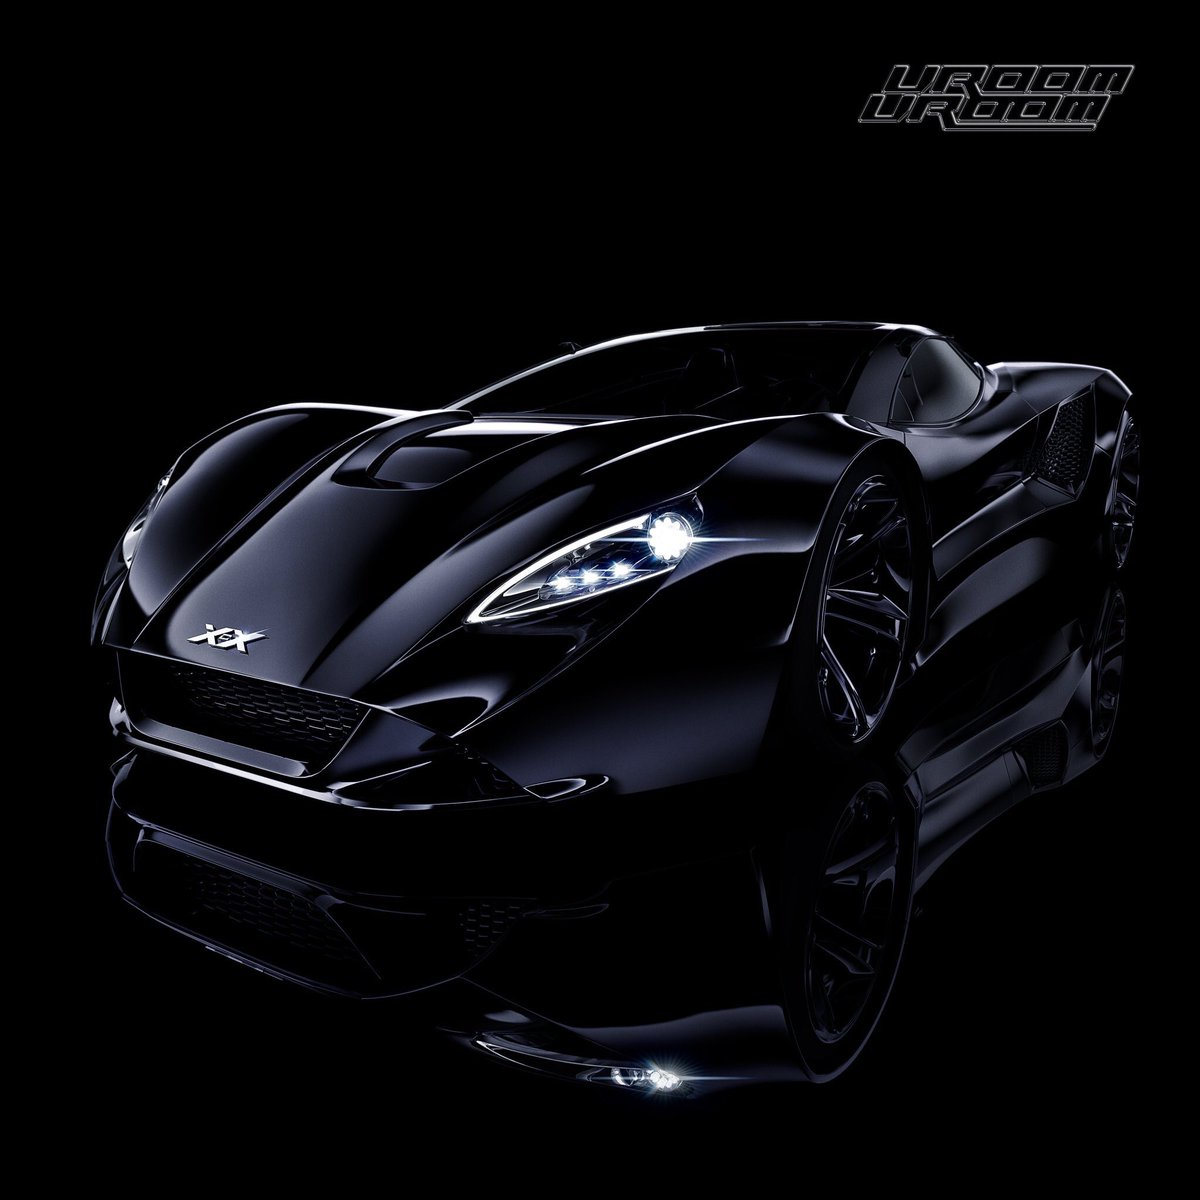 Vroom Vroom EP by Charli XCX.png